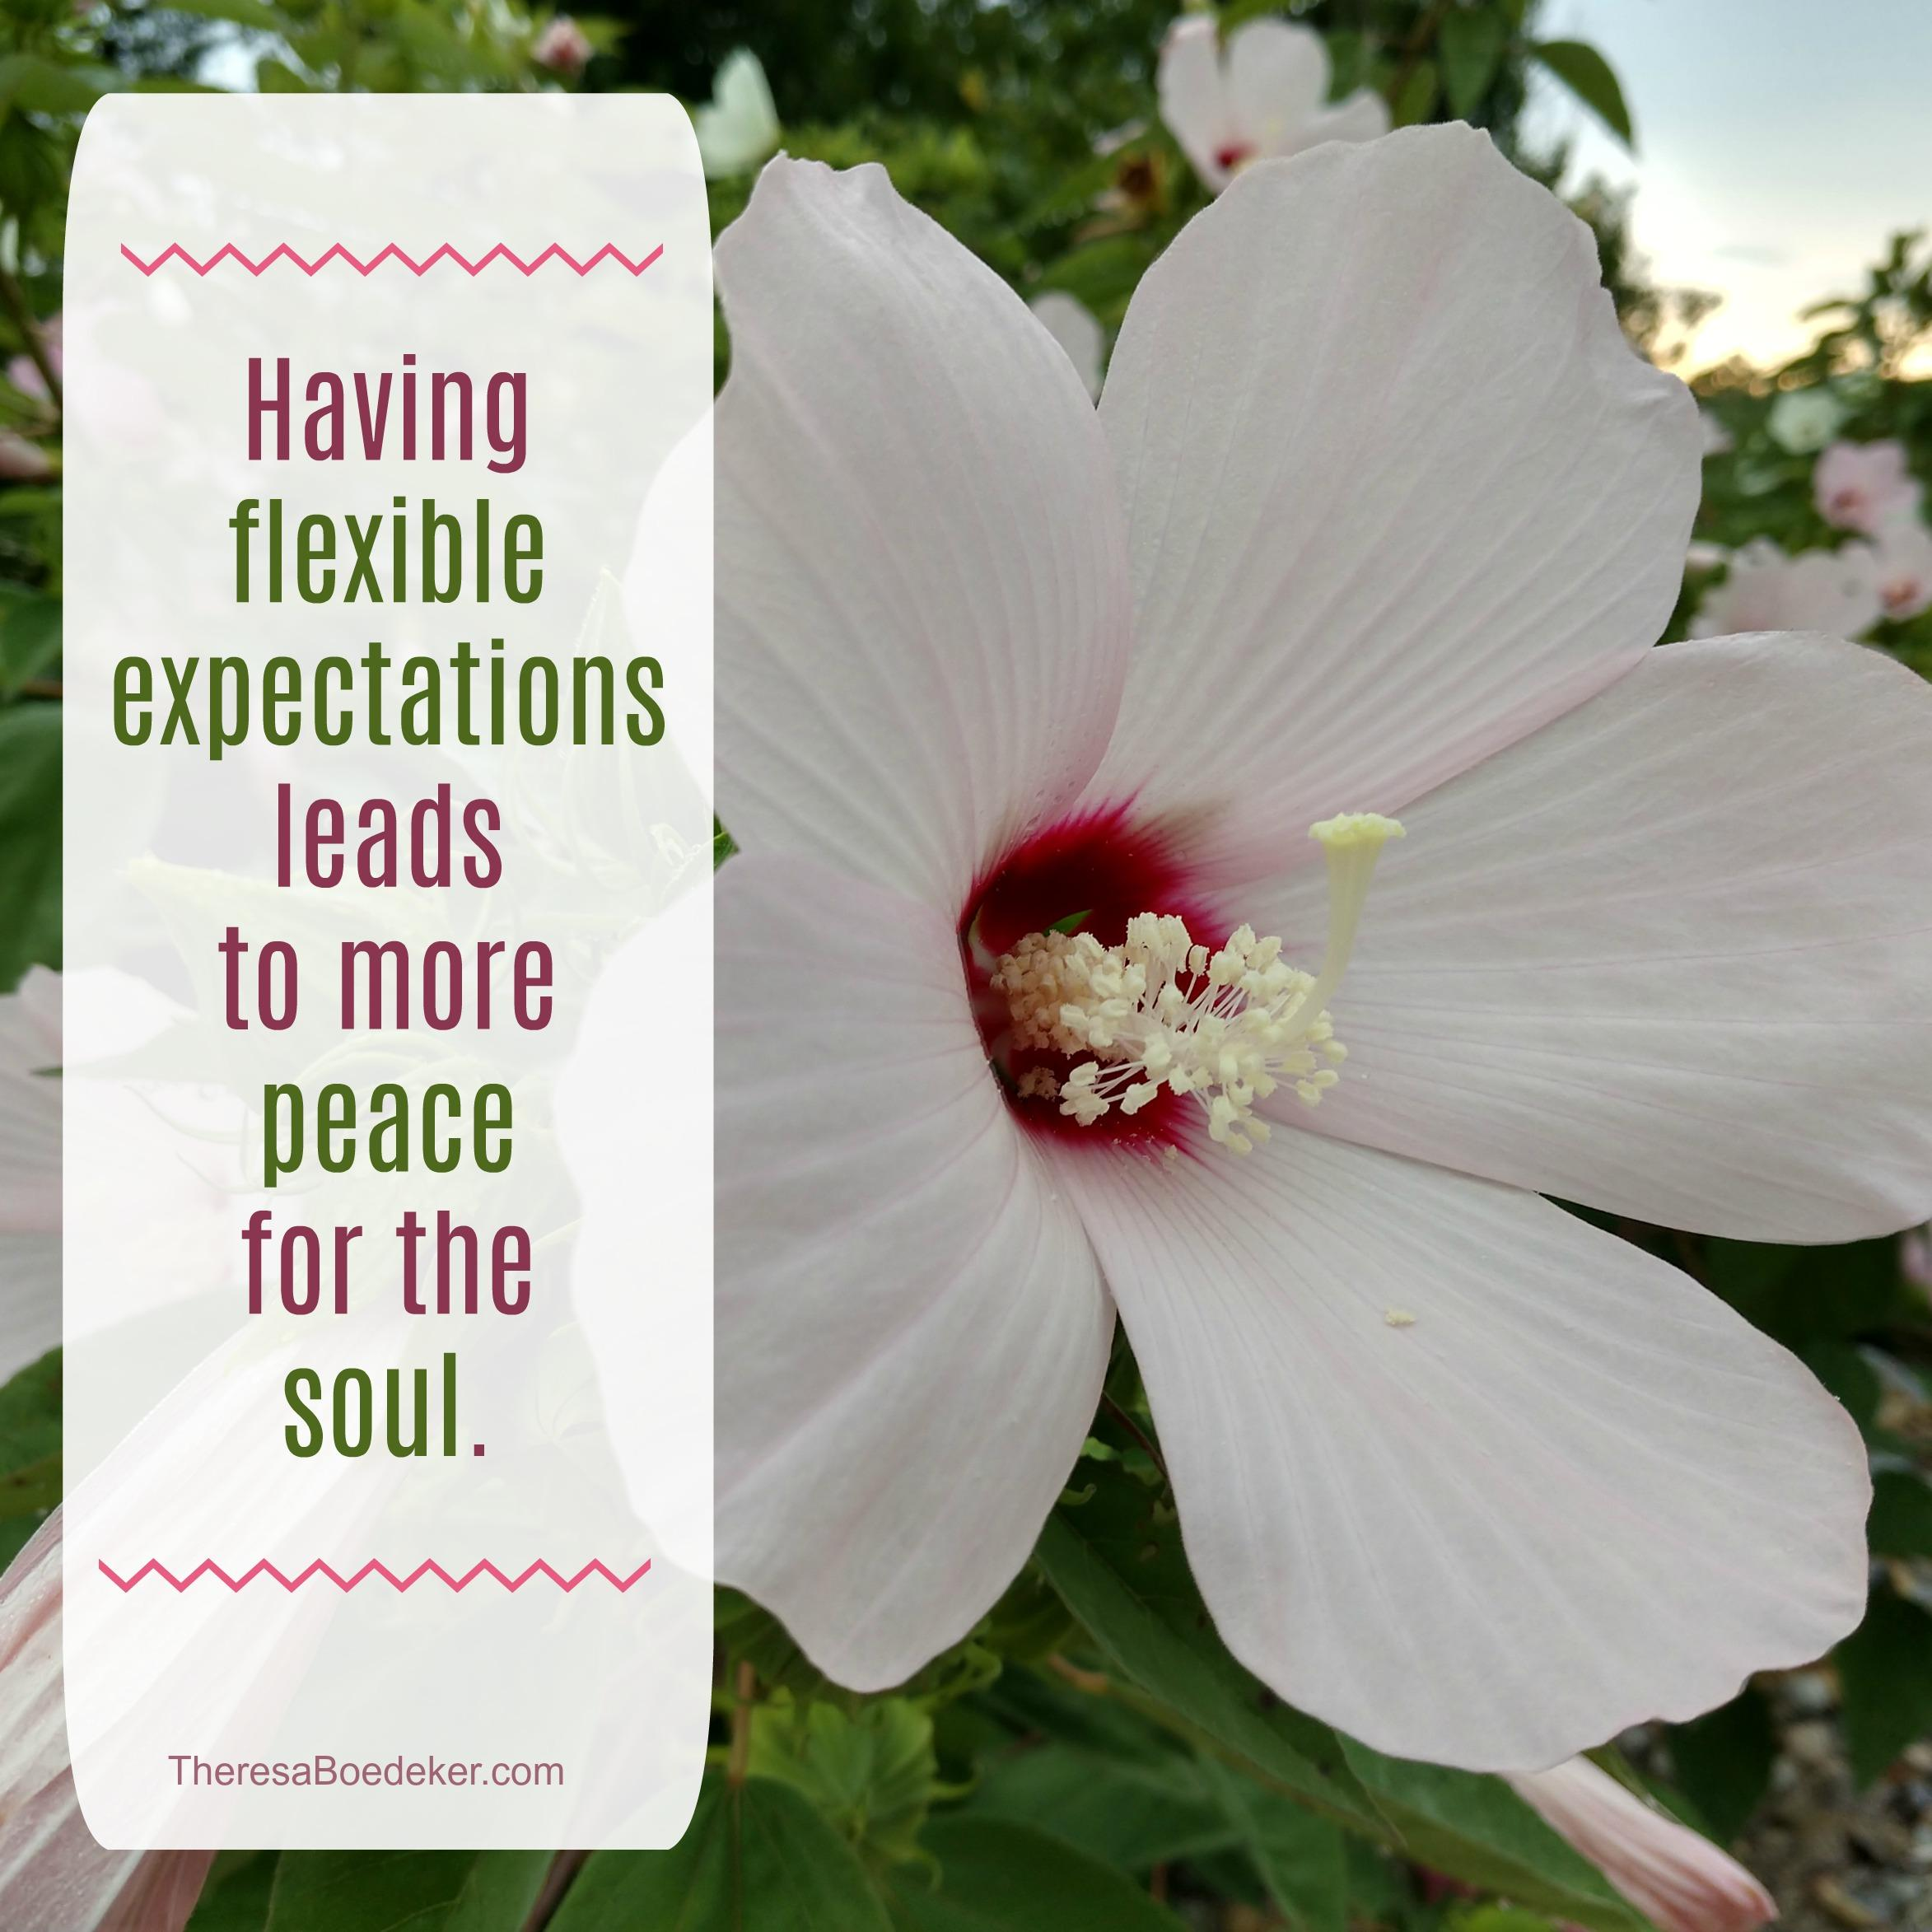 Allowing flexibility in our expectations and plans allows us to enjoy life more fully.